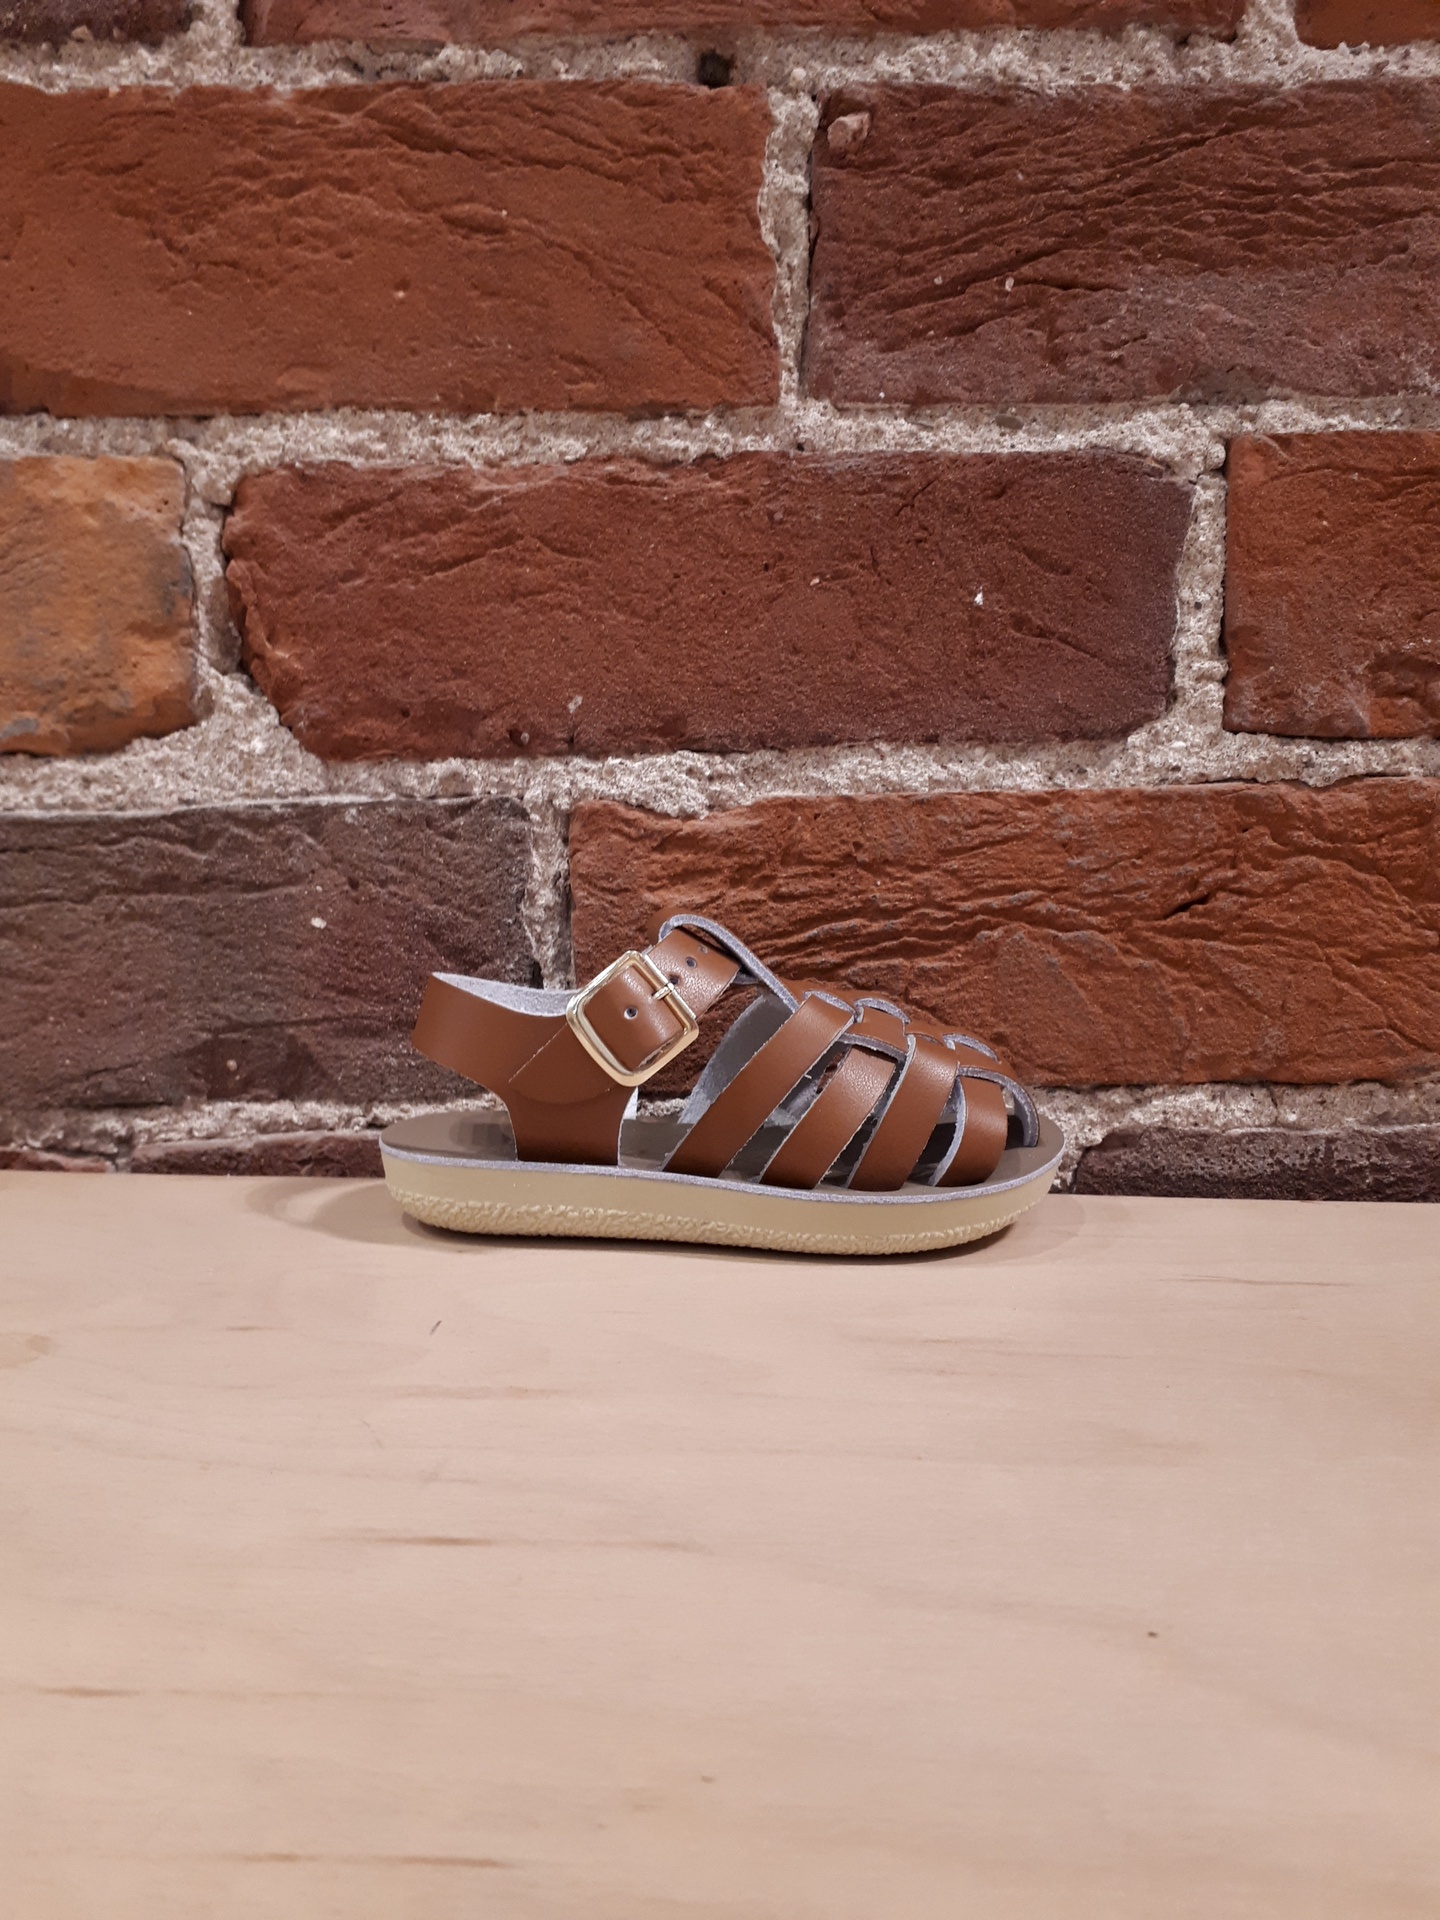 SALT WATER SANDALS - SAILOR IN TAN (5-8)